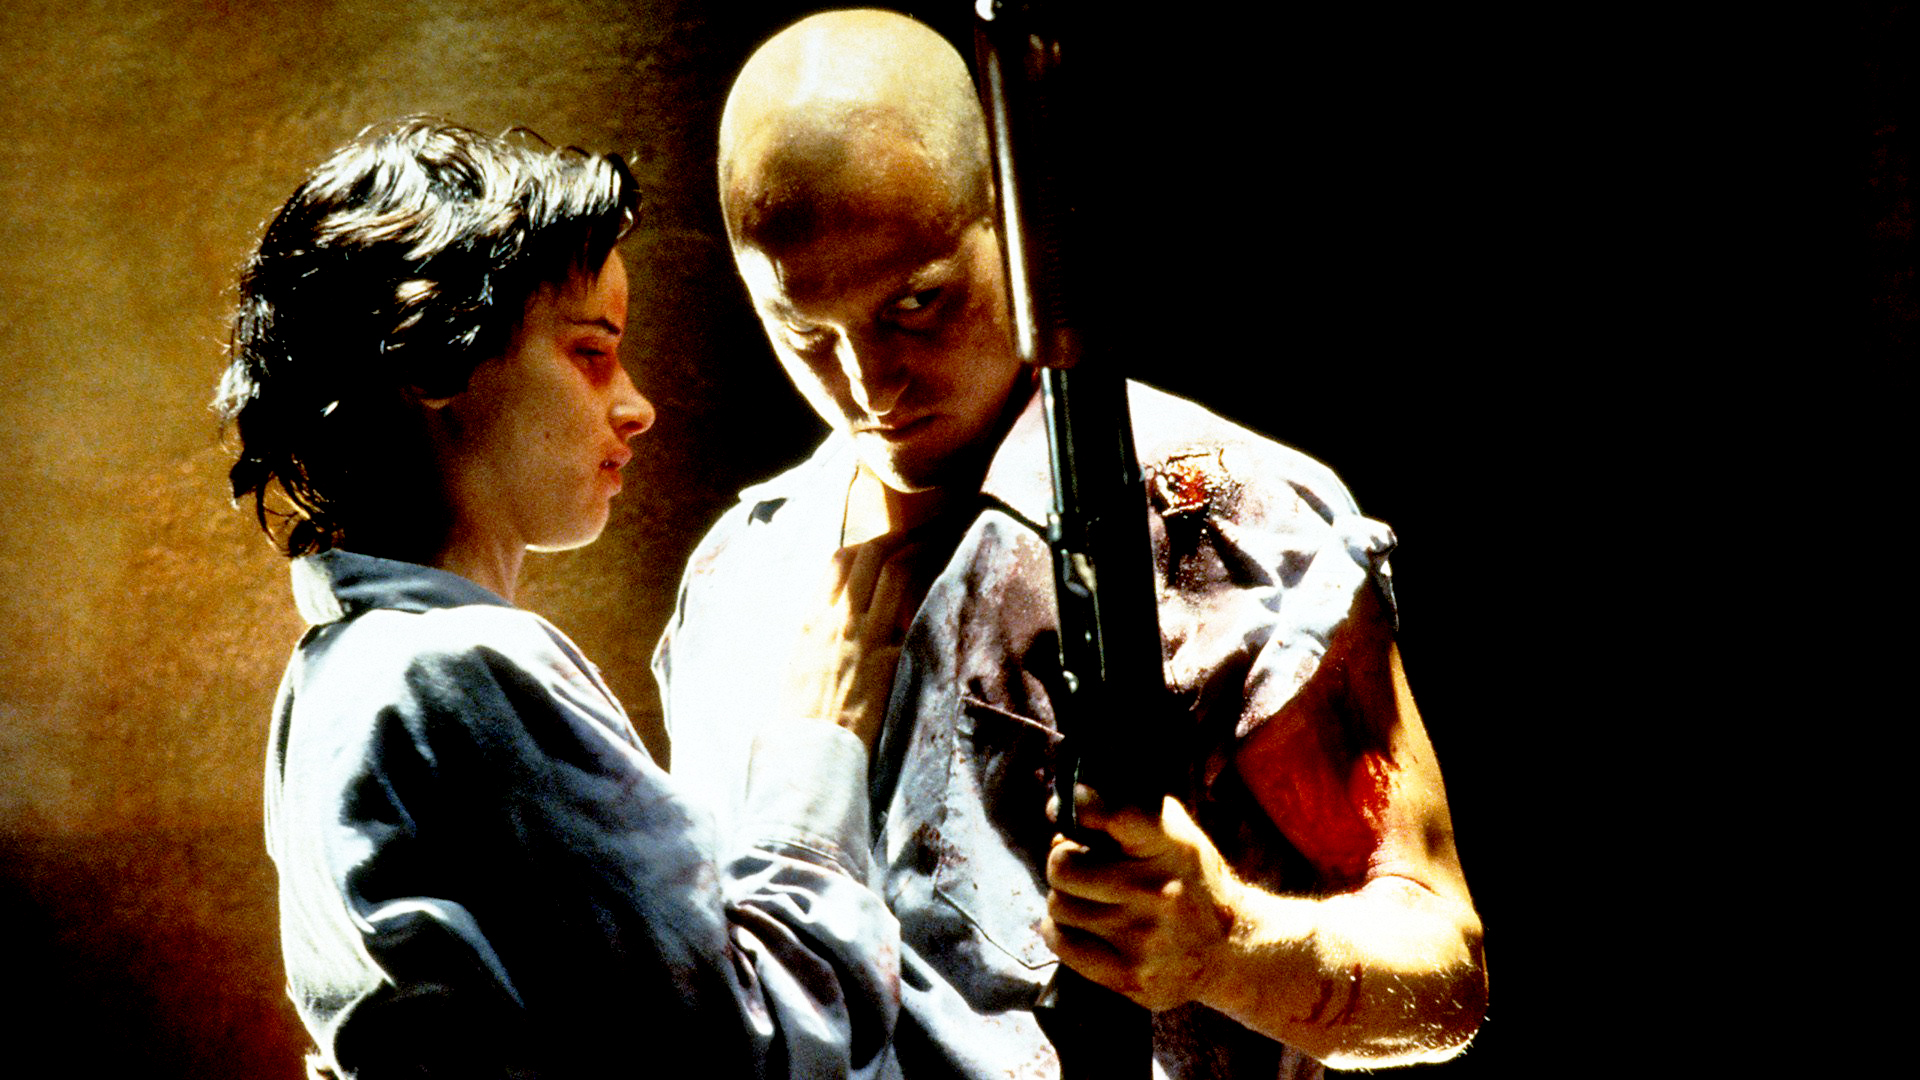 an analysis of television born killers Few films have gained the notoriety of natural born killers, which is undoubtedly one of the most controversial films of all time oliver stone's widely talked about film comes up in the media every so often, most recently in the newtown shootings.